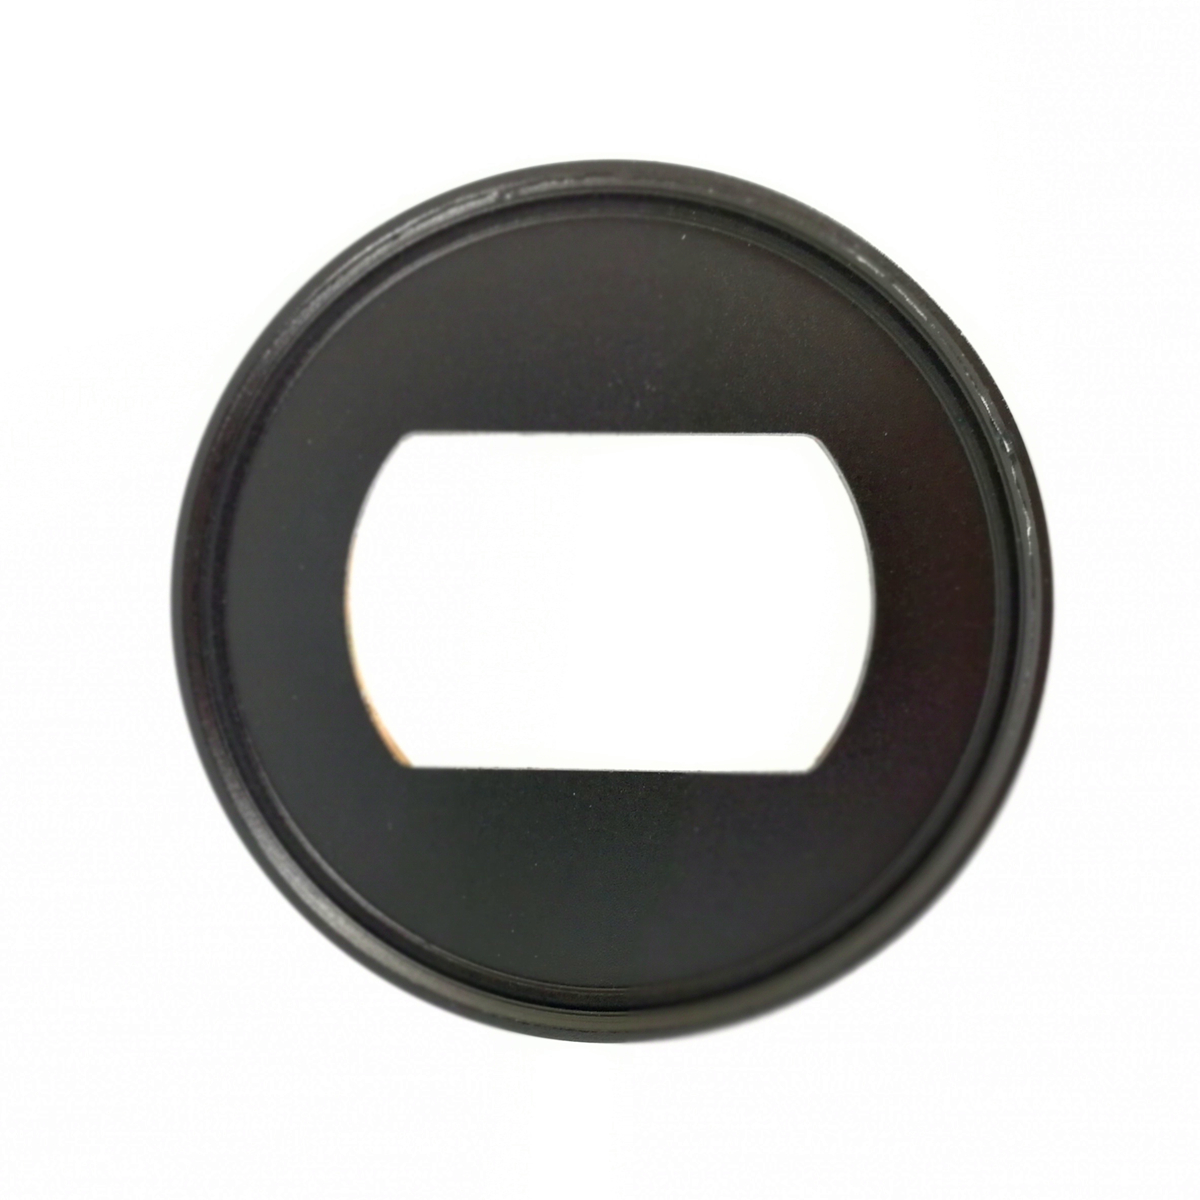 Image 2 - 52mm Metal Filter Adapter Ring + Sticker for Sony RX100M5 / RX100M6 / RX100 V RX100V / RX100 VI RX100VI replace RN RX100VI-in Lens Adapter from Consumer Electronics